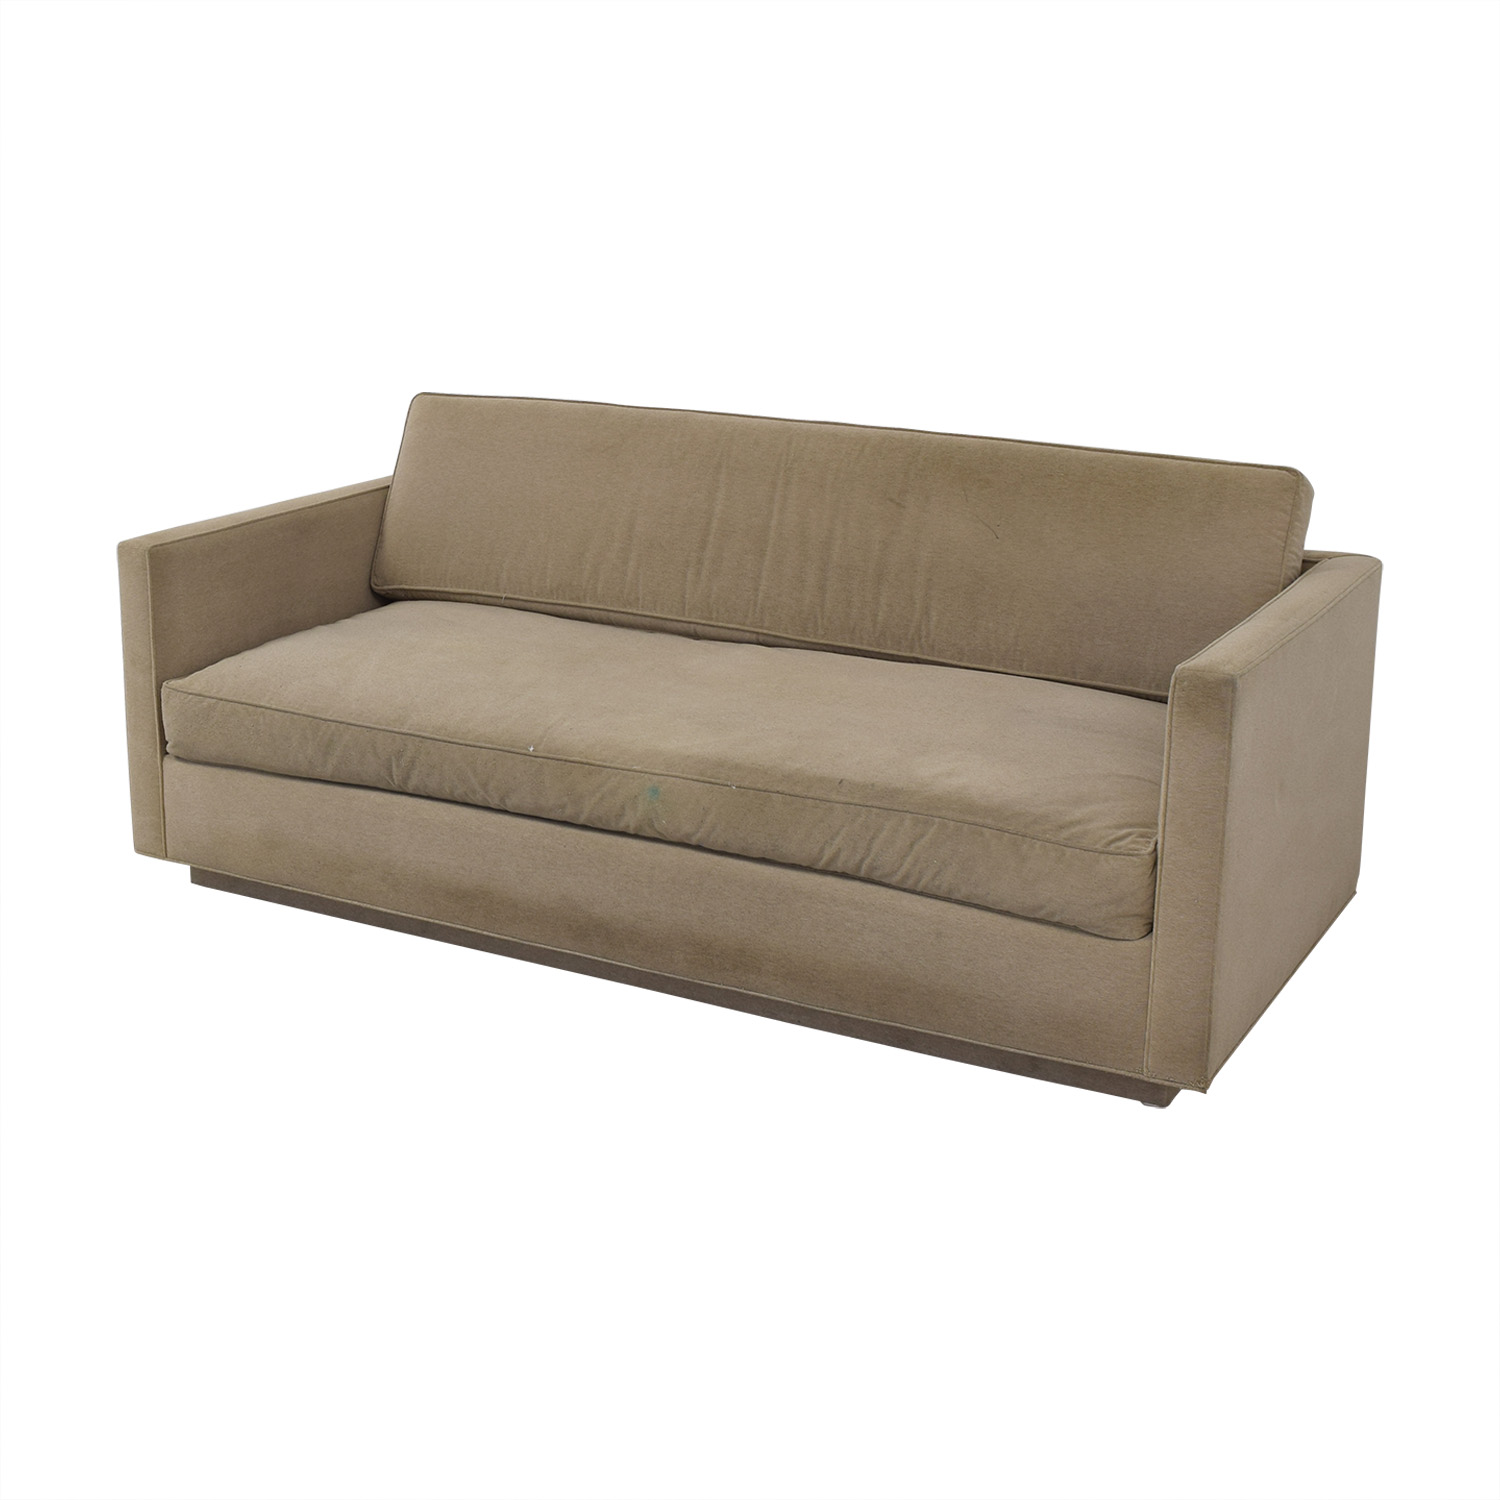 Todd Hase Todd Hase One Cushion Sofa used